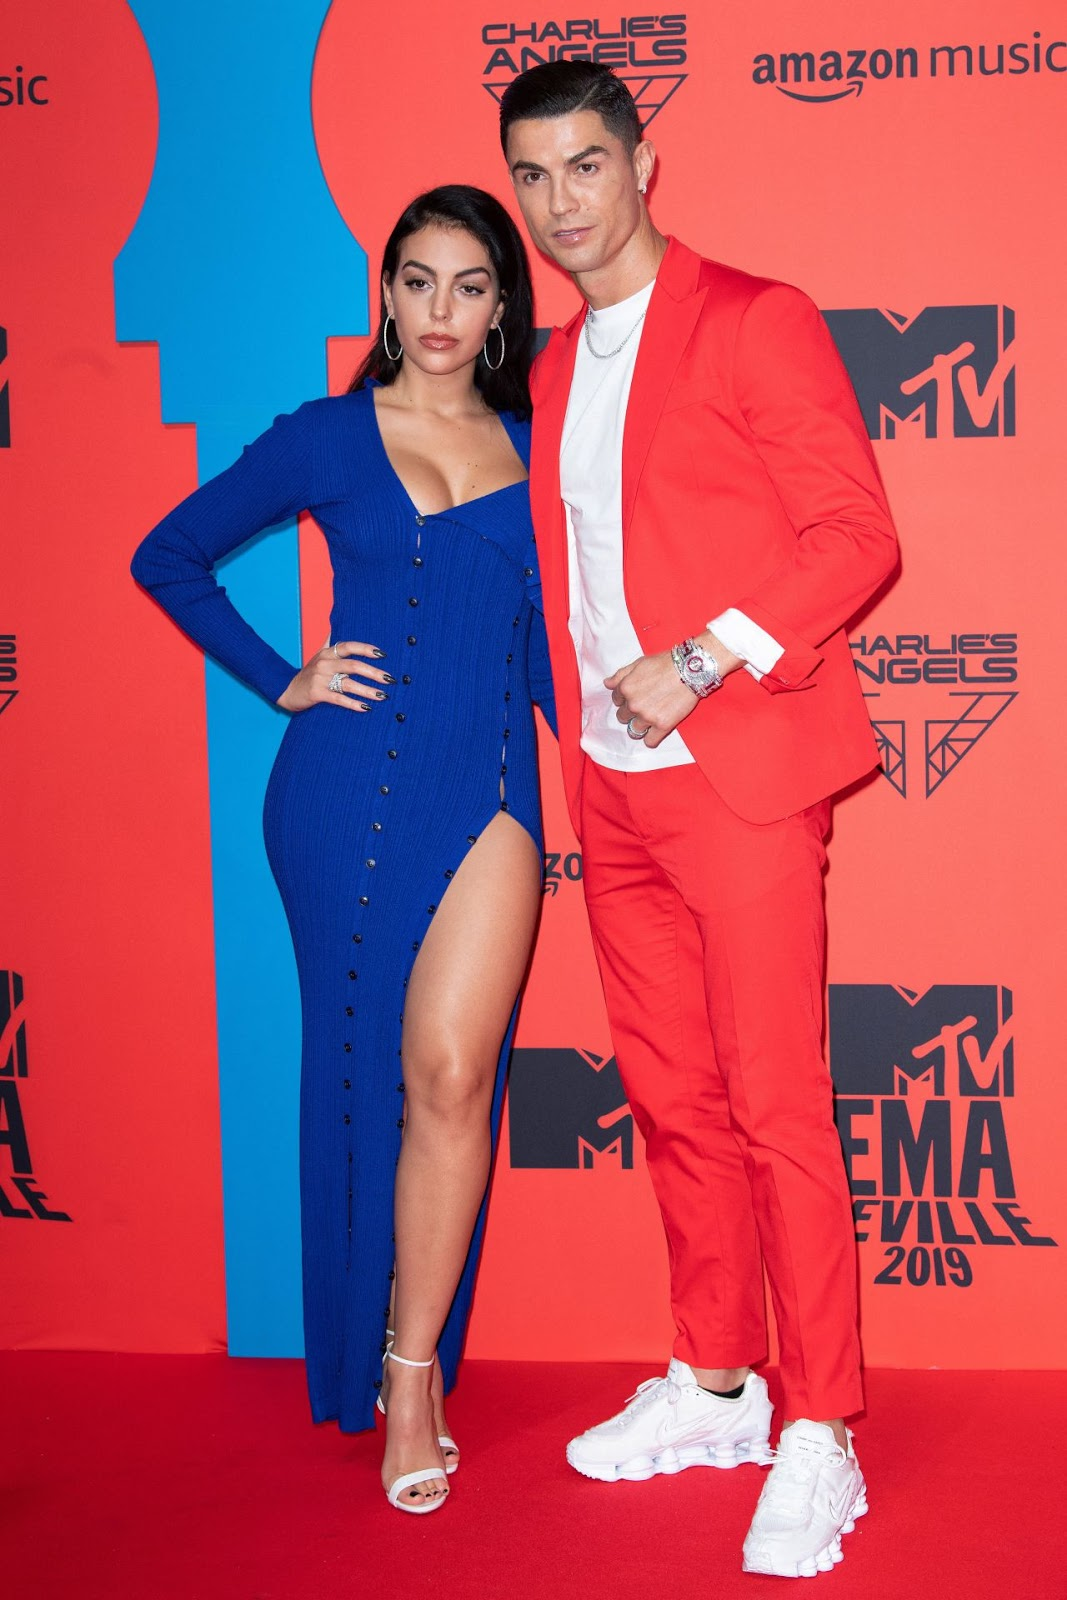 Cristiano Ronaldo and Georgina Rodriguez were a stunning couple at the MTV Europe Music Awards